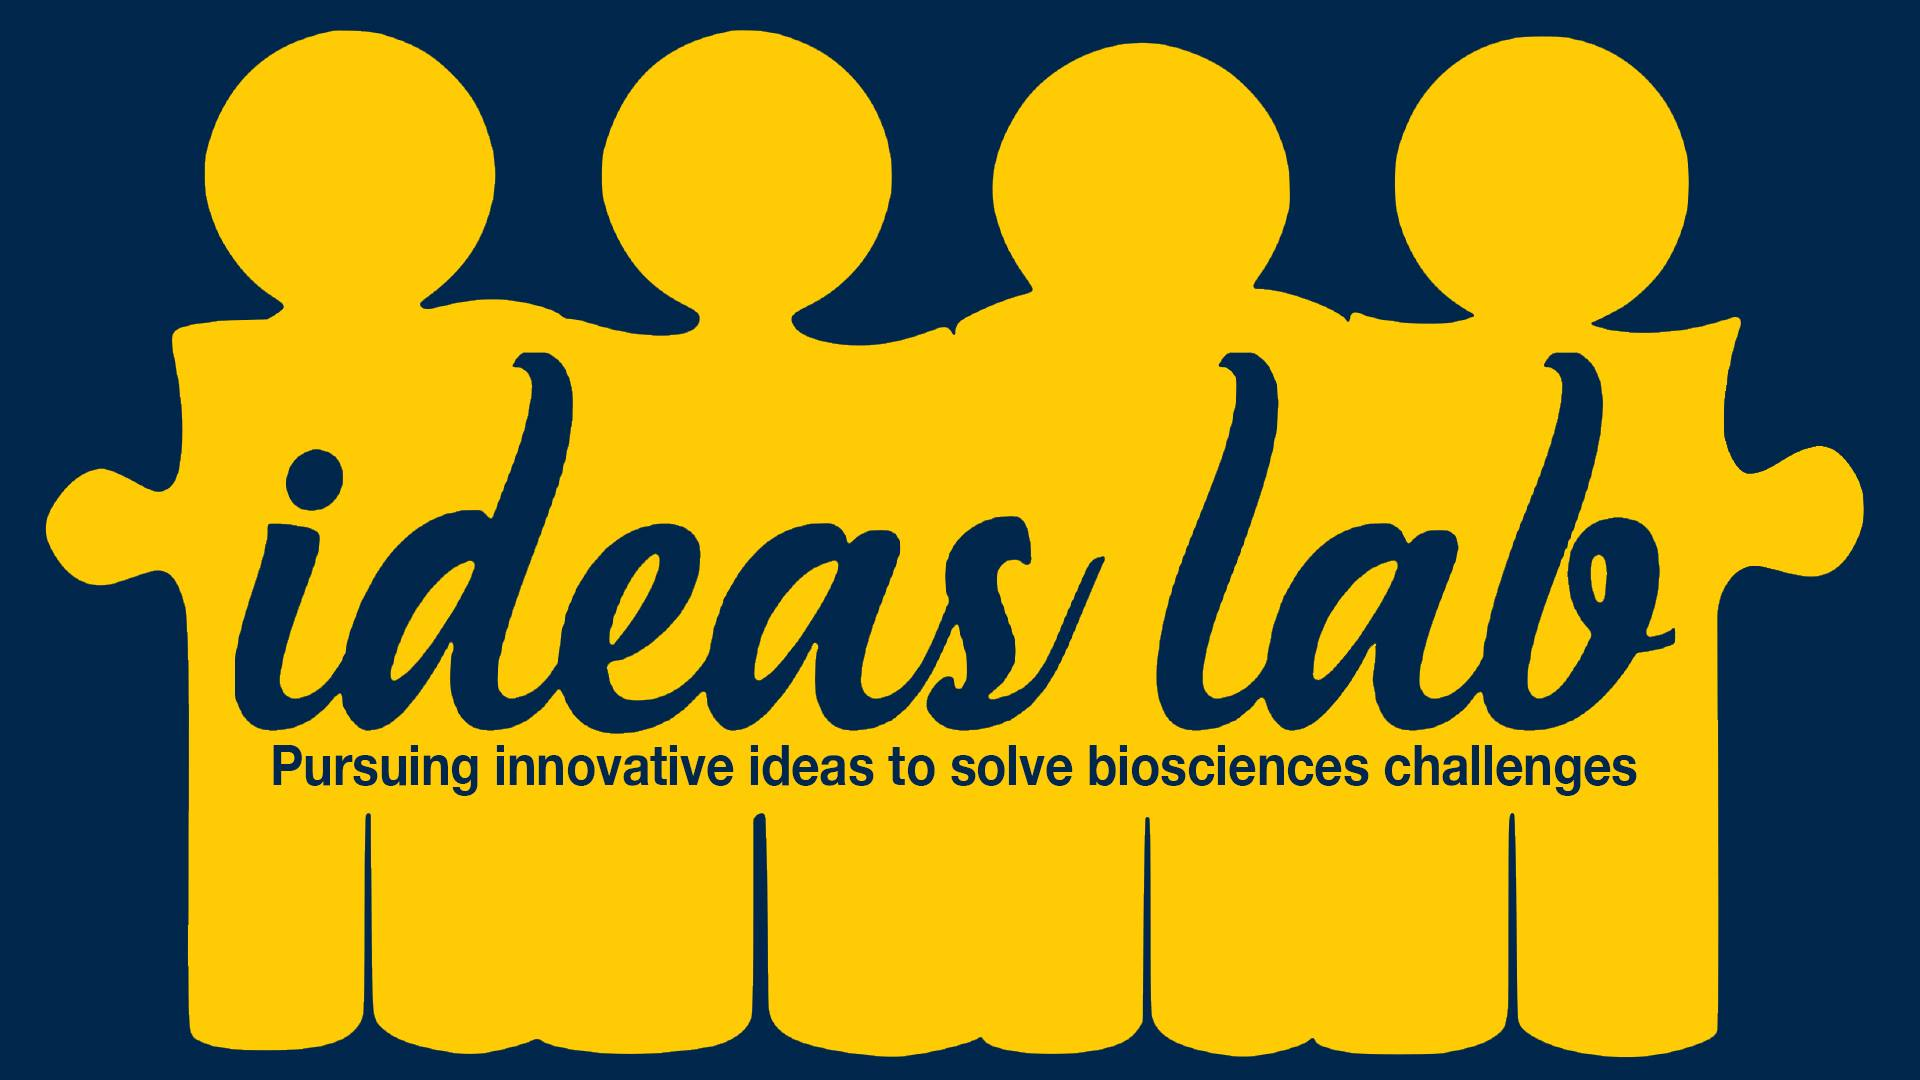 Ideas Lab Banner: Pursuing innovative ideas to solve biosciences challenges